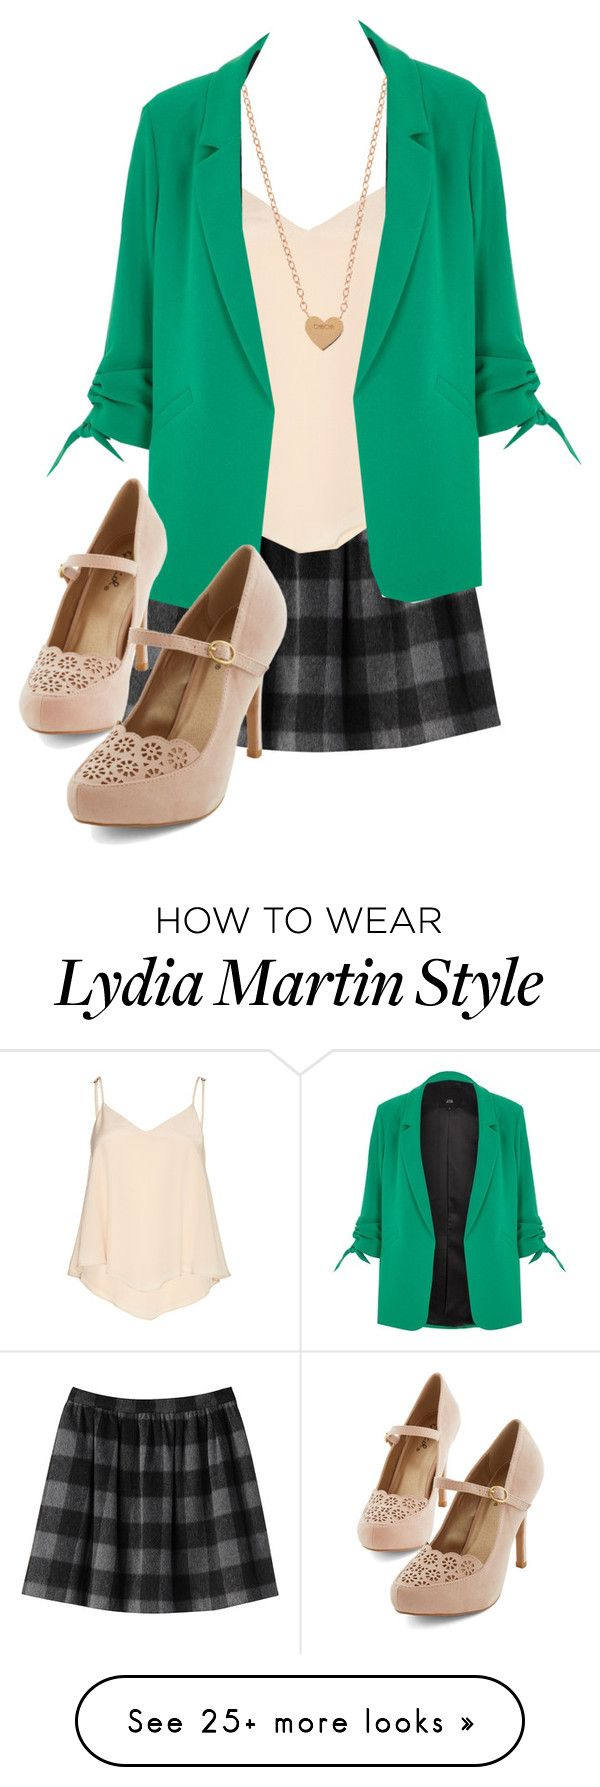 """Lydia Martin"" by samtiritilli666lol on Polyvore featuring Alice + Olivia and River Island"